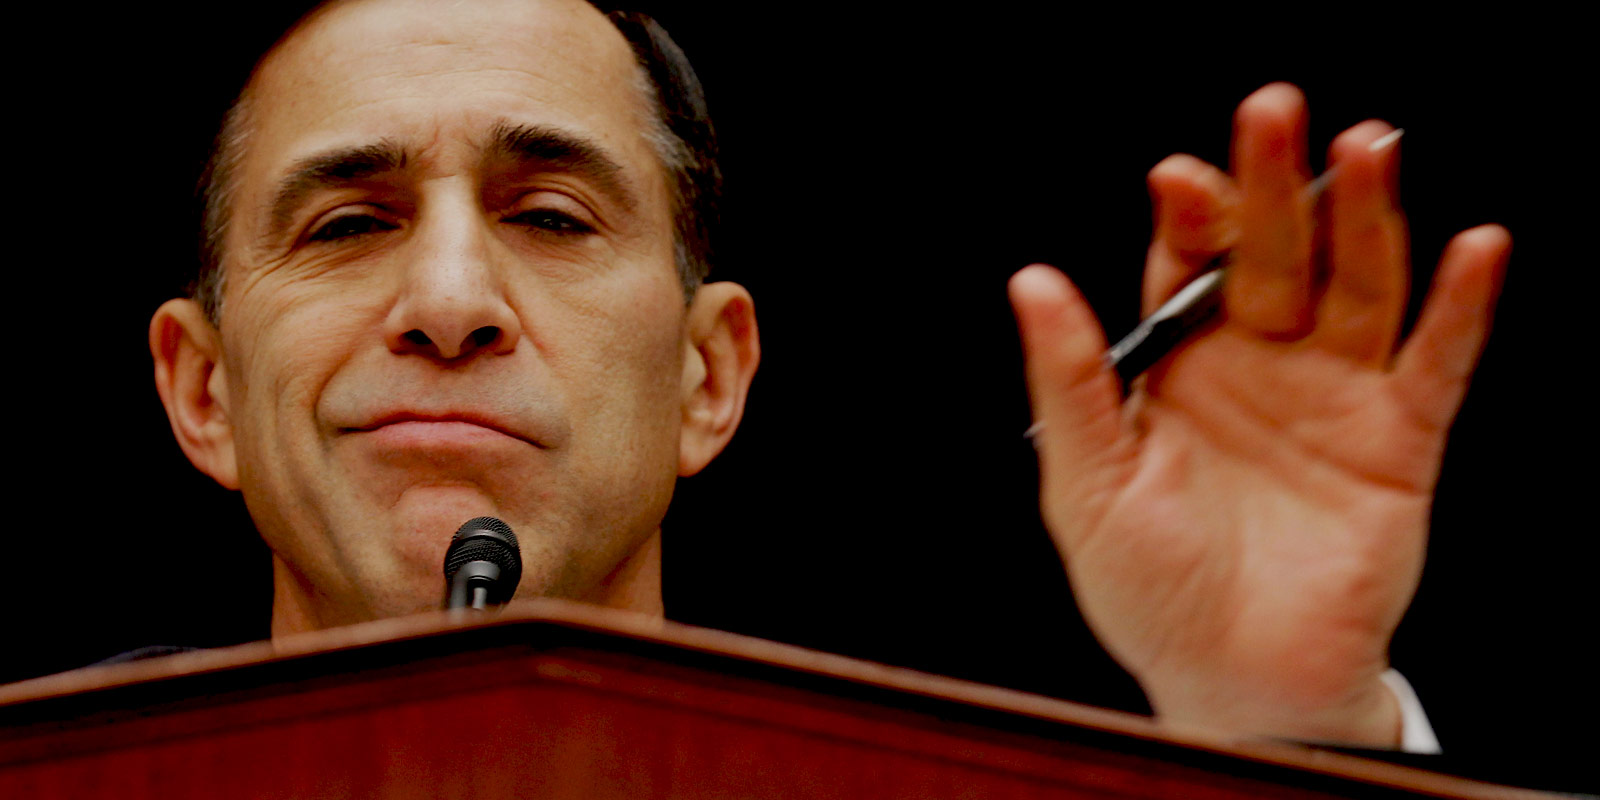 Darrel Issa, Paid Liar.